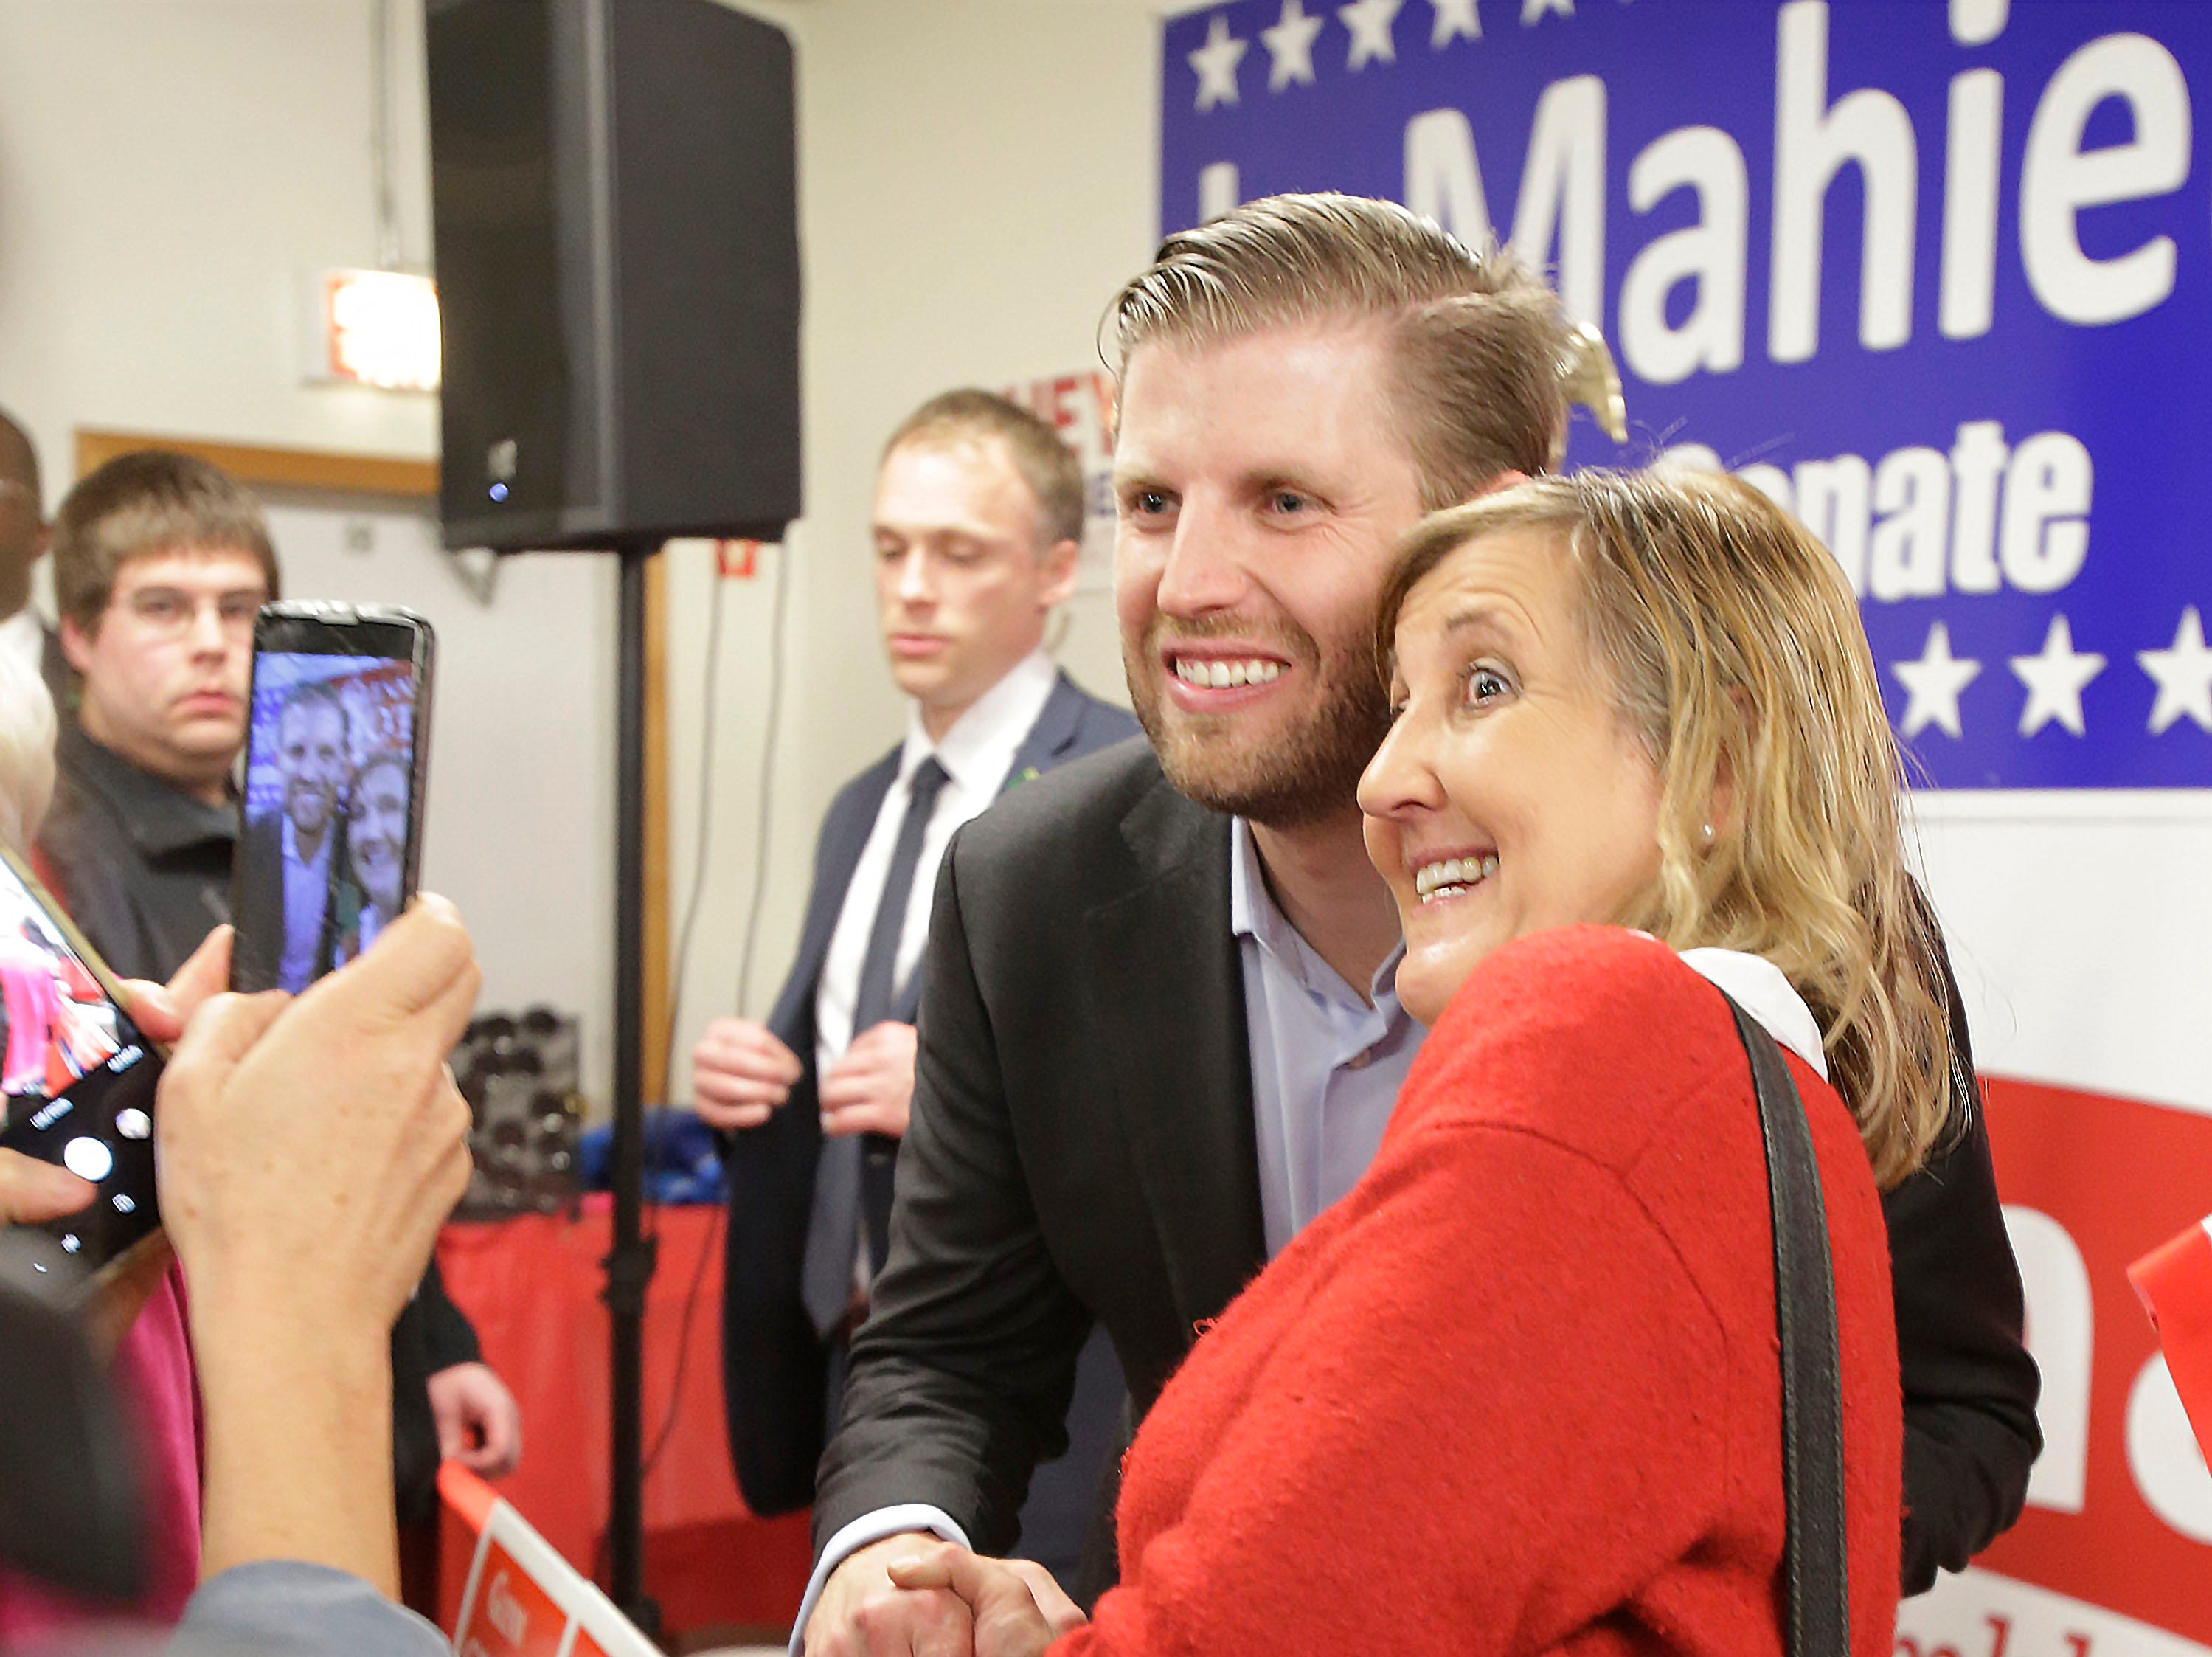 Brenda Wagner of Sheboygan, right, poses with Eric Trump, Tuesday, October 30, 2018, in Sheboygan, Wis. Trump was in Sheboygan to rally support for Wisconsin Republicans.